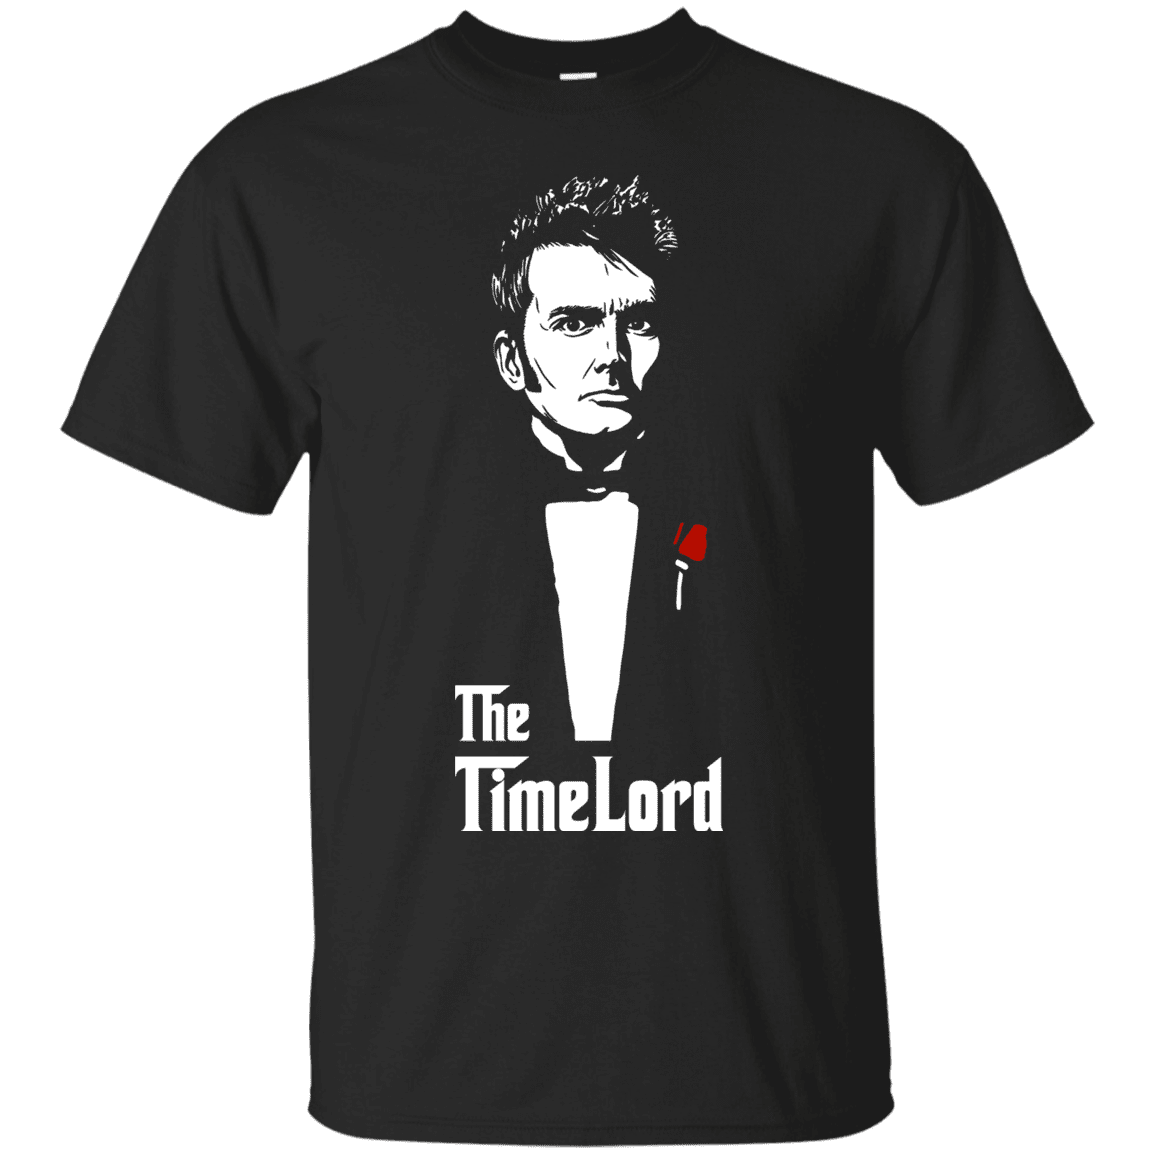 The Time Lord T-Shirt